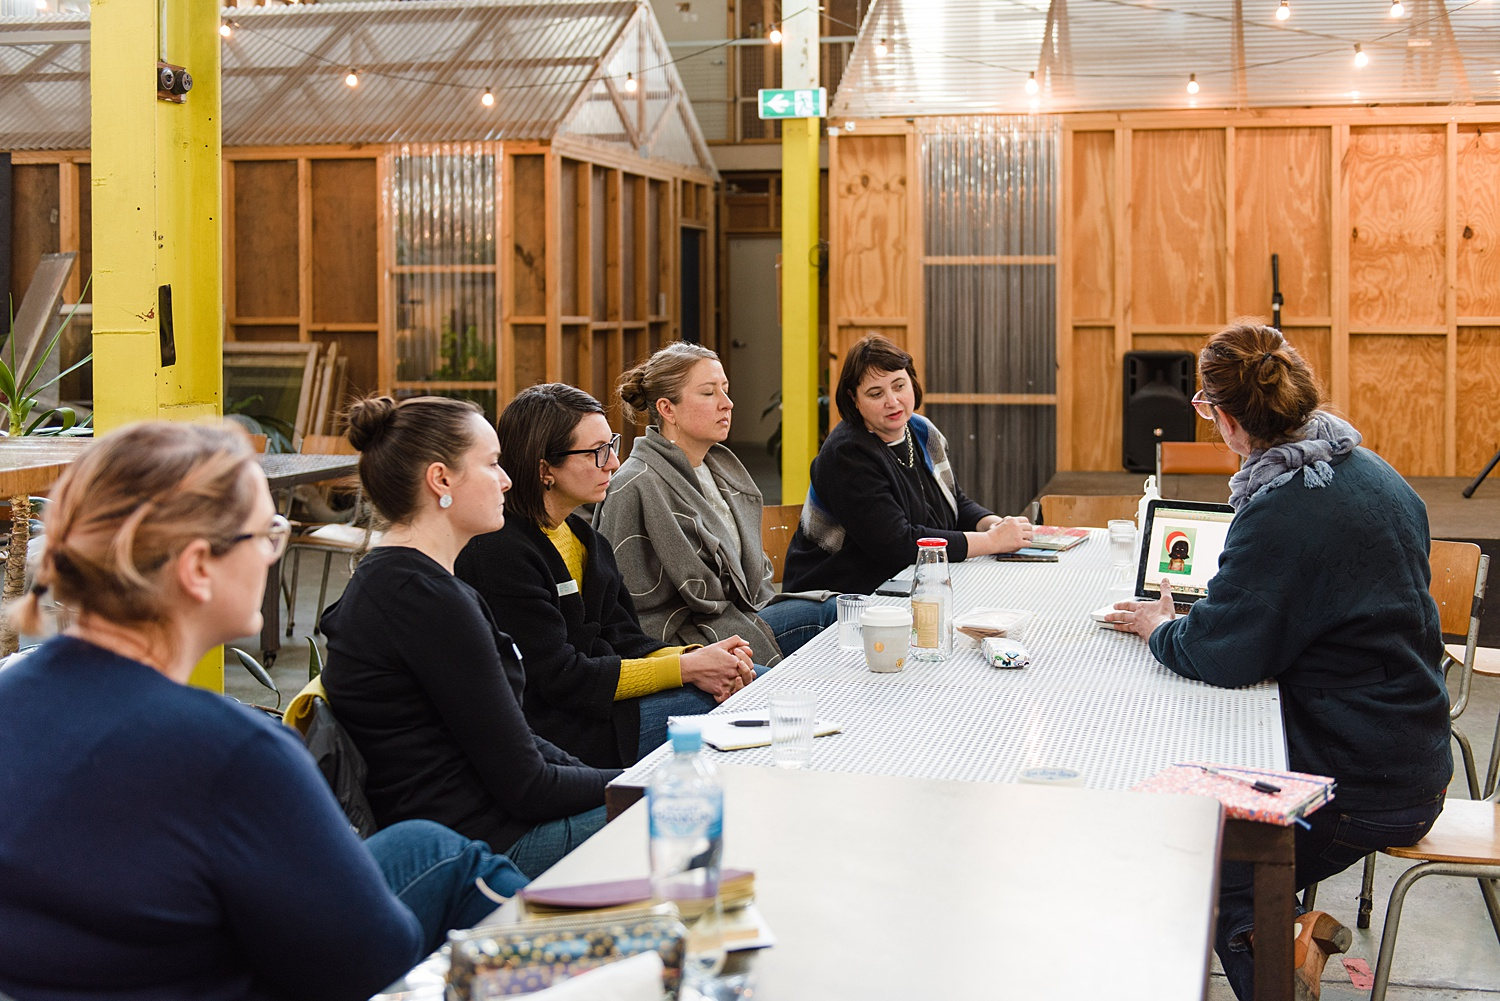 Mentor Jacqui Stockdale at member Q&A Event discussing her work & career with members. SUN 28 JUL 2019  Image by: Samara Clifford